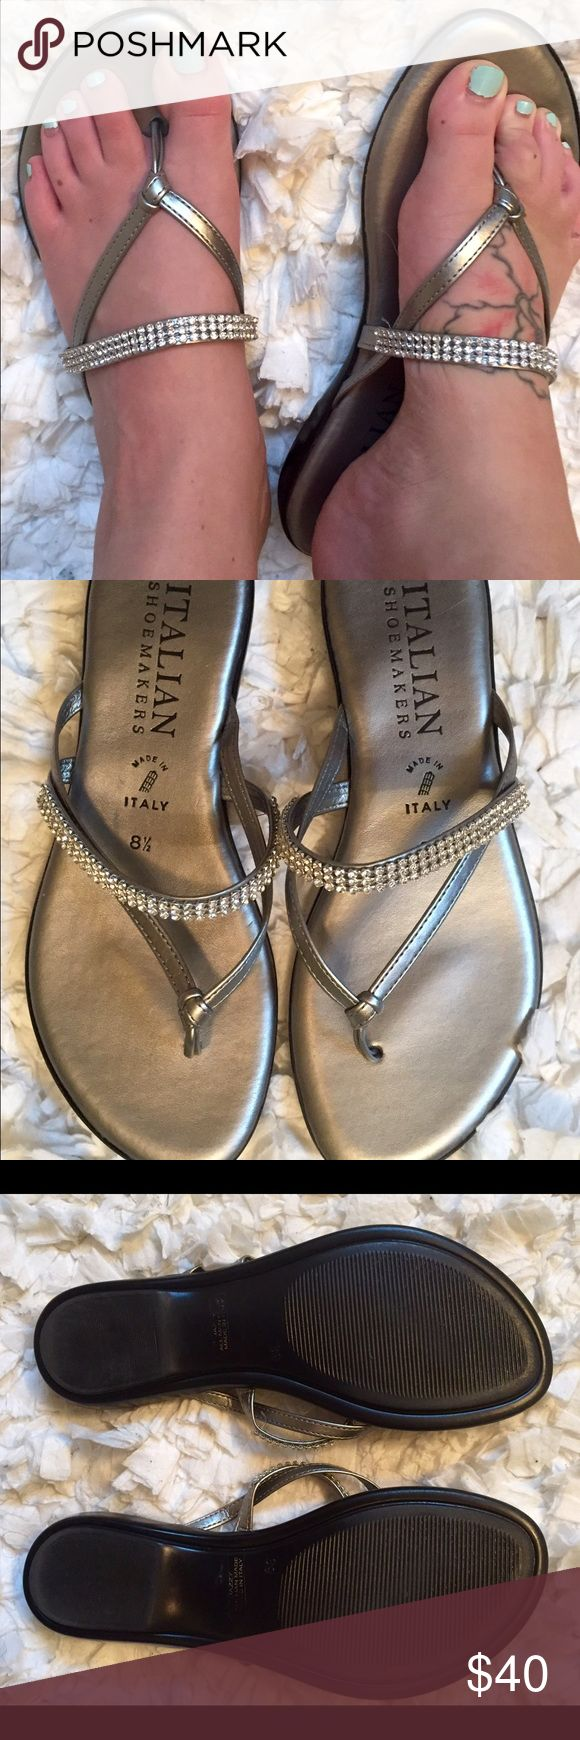 Italian Shoemakers silver formal flat sandals Italian Shoemakers silver flat sandals / flip-flops with some bling sparkle detailing. Worn only once, in fantastic condition. A little padding in sole for extra comfort. Size 8.5 true to size. Retailed at $60. Italian Shoemakers Shoes Sandals